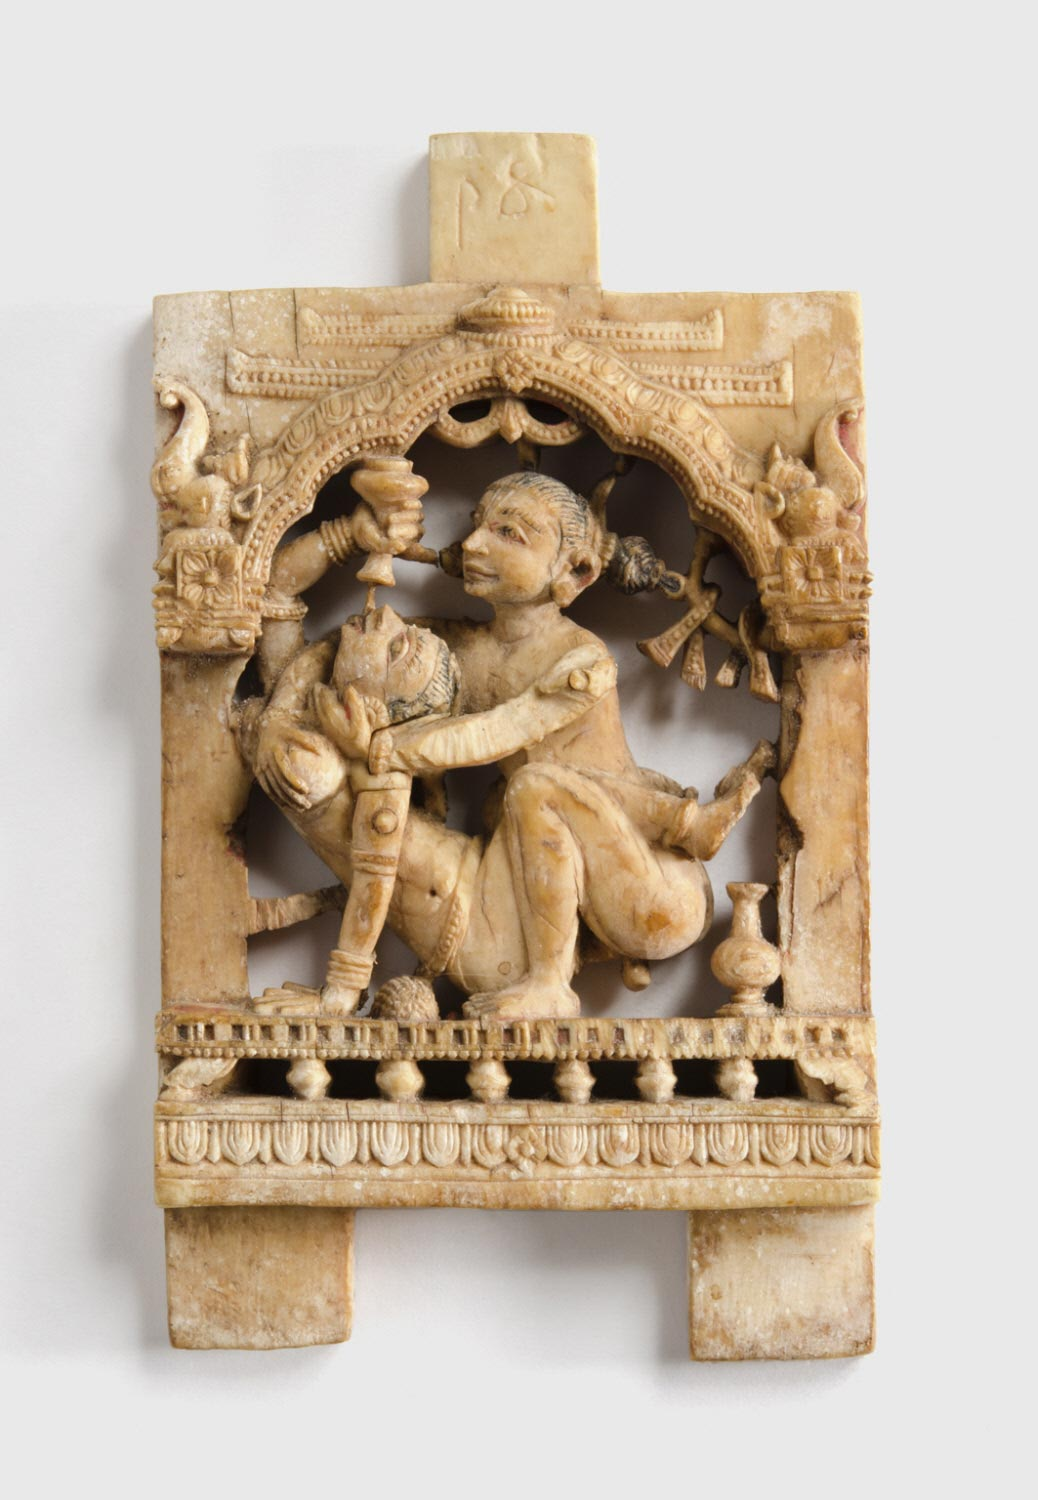 Ivory Plaque with Lovemaking Couple - Circa 15th-16th Century